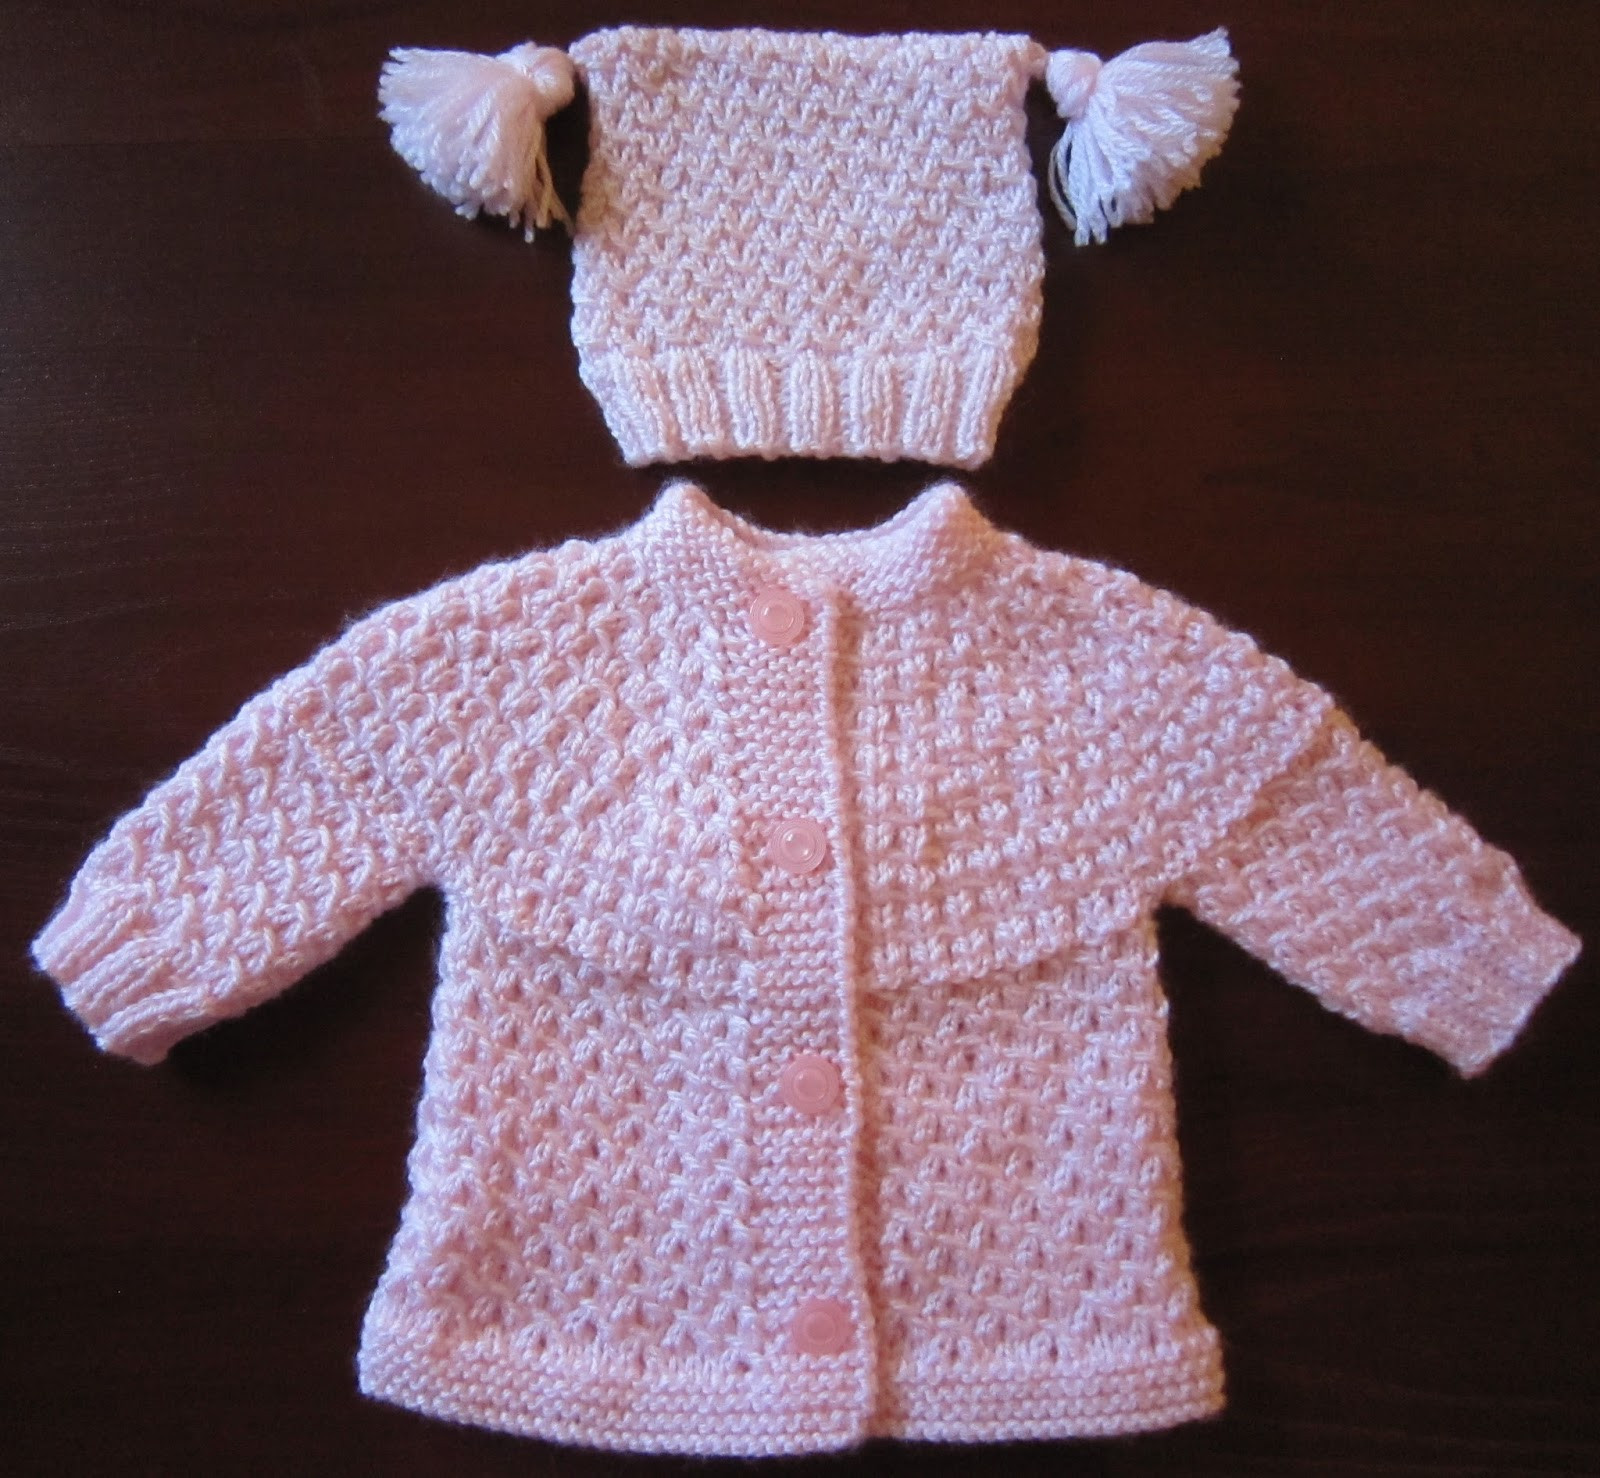 Unique Sea Trail Grandmas Free Preemie Knit Sweater and Hat Knitted Preemie Hats Of Contemporary 46 Images Knitted Preemie Hats